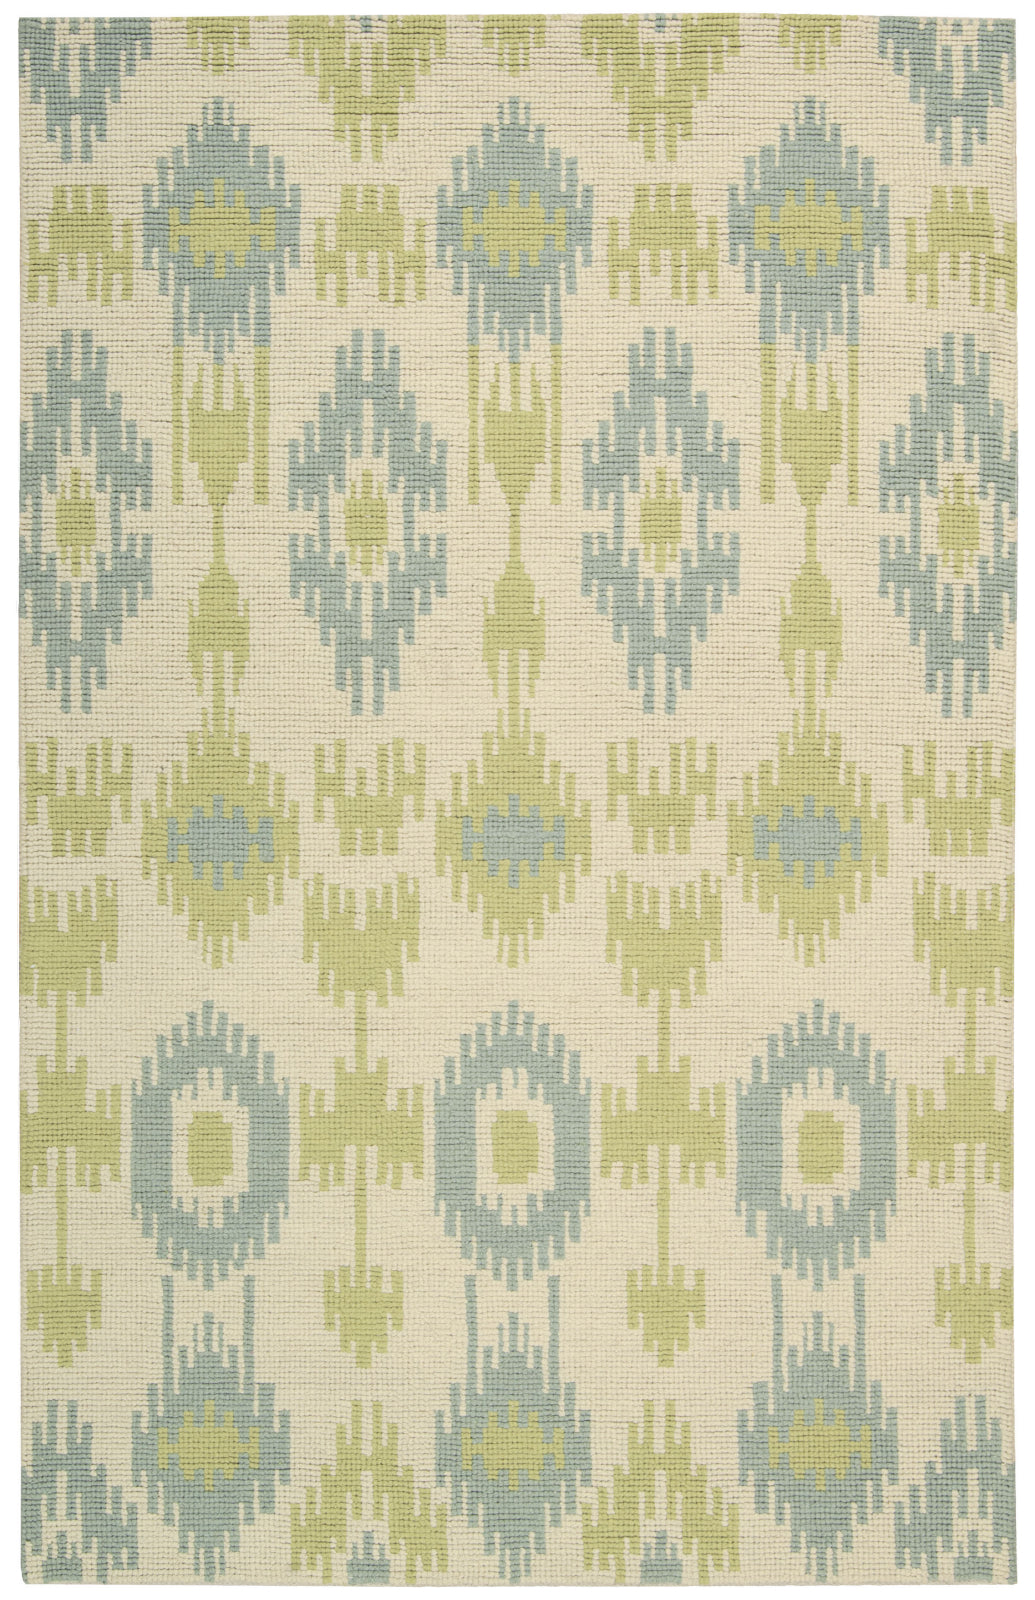 Nourison Prism PRI33 Honeydew Area Rug by Barclay Butera main image